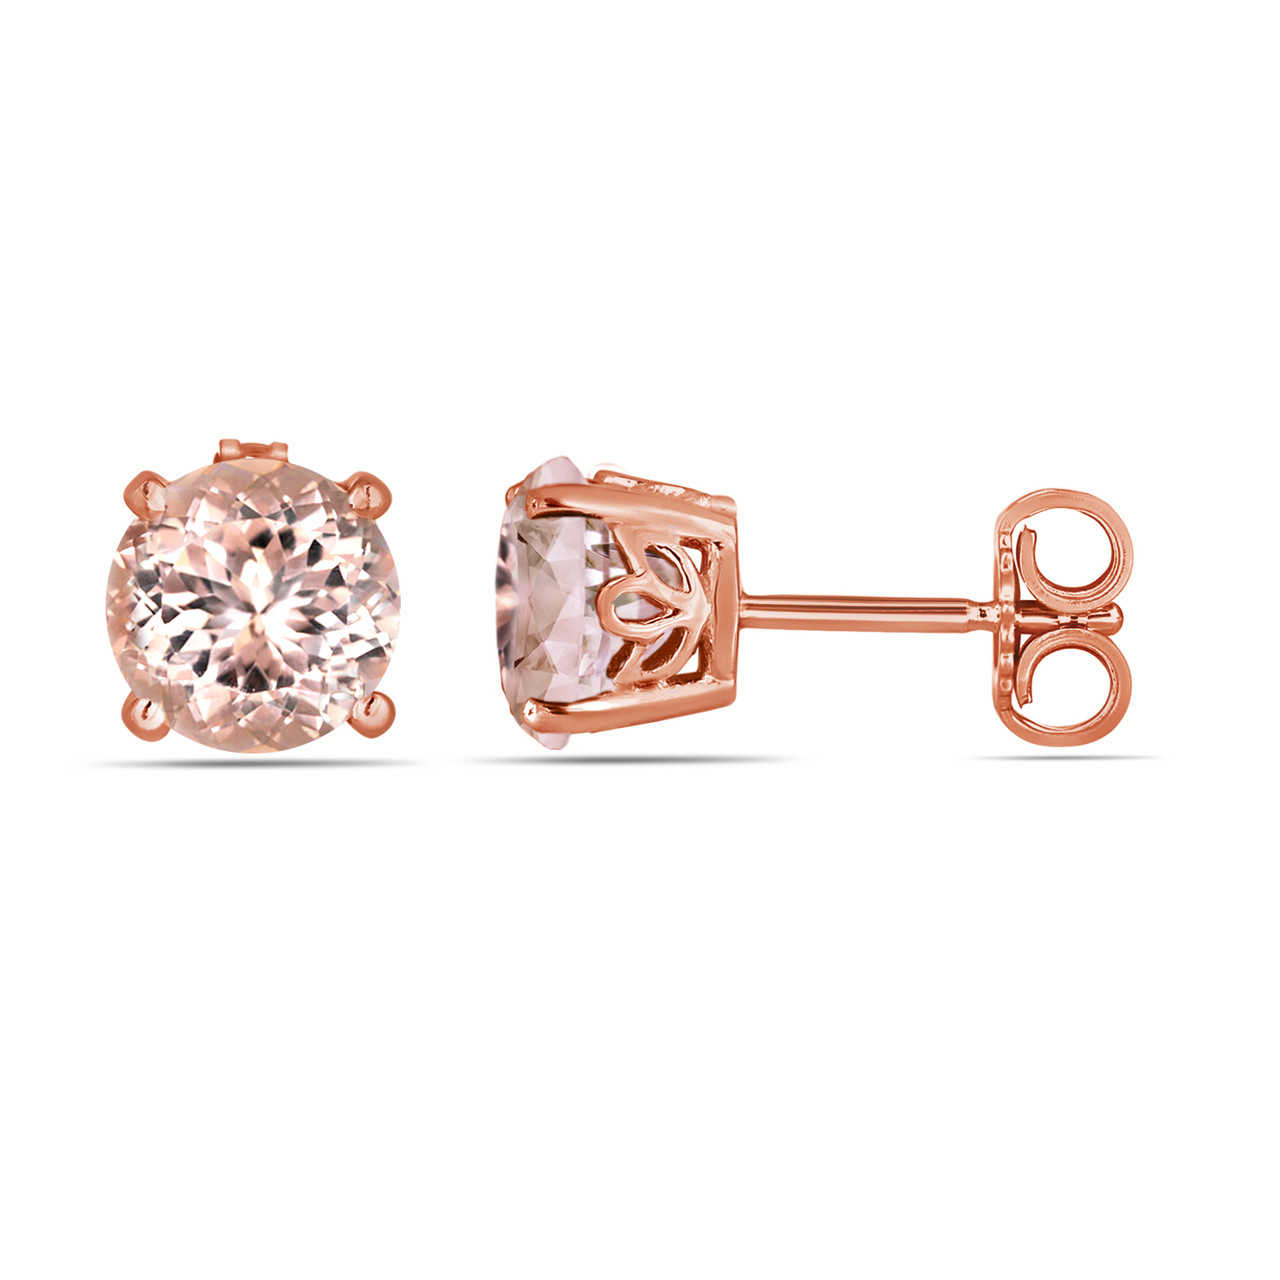 stone a pointe and morganite stud products back small strand